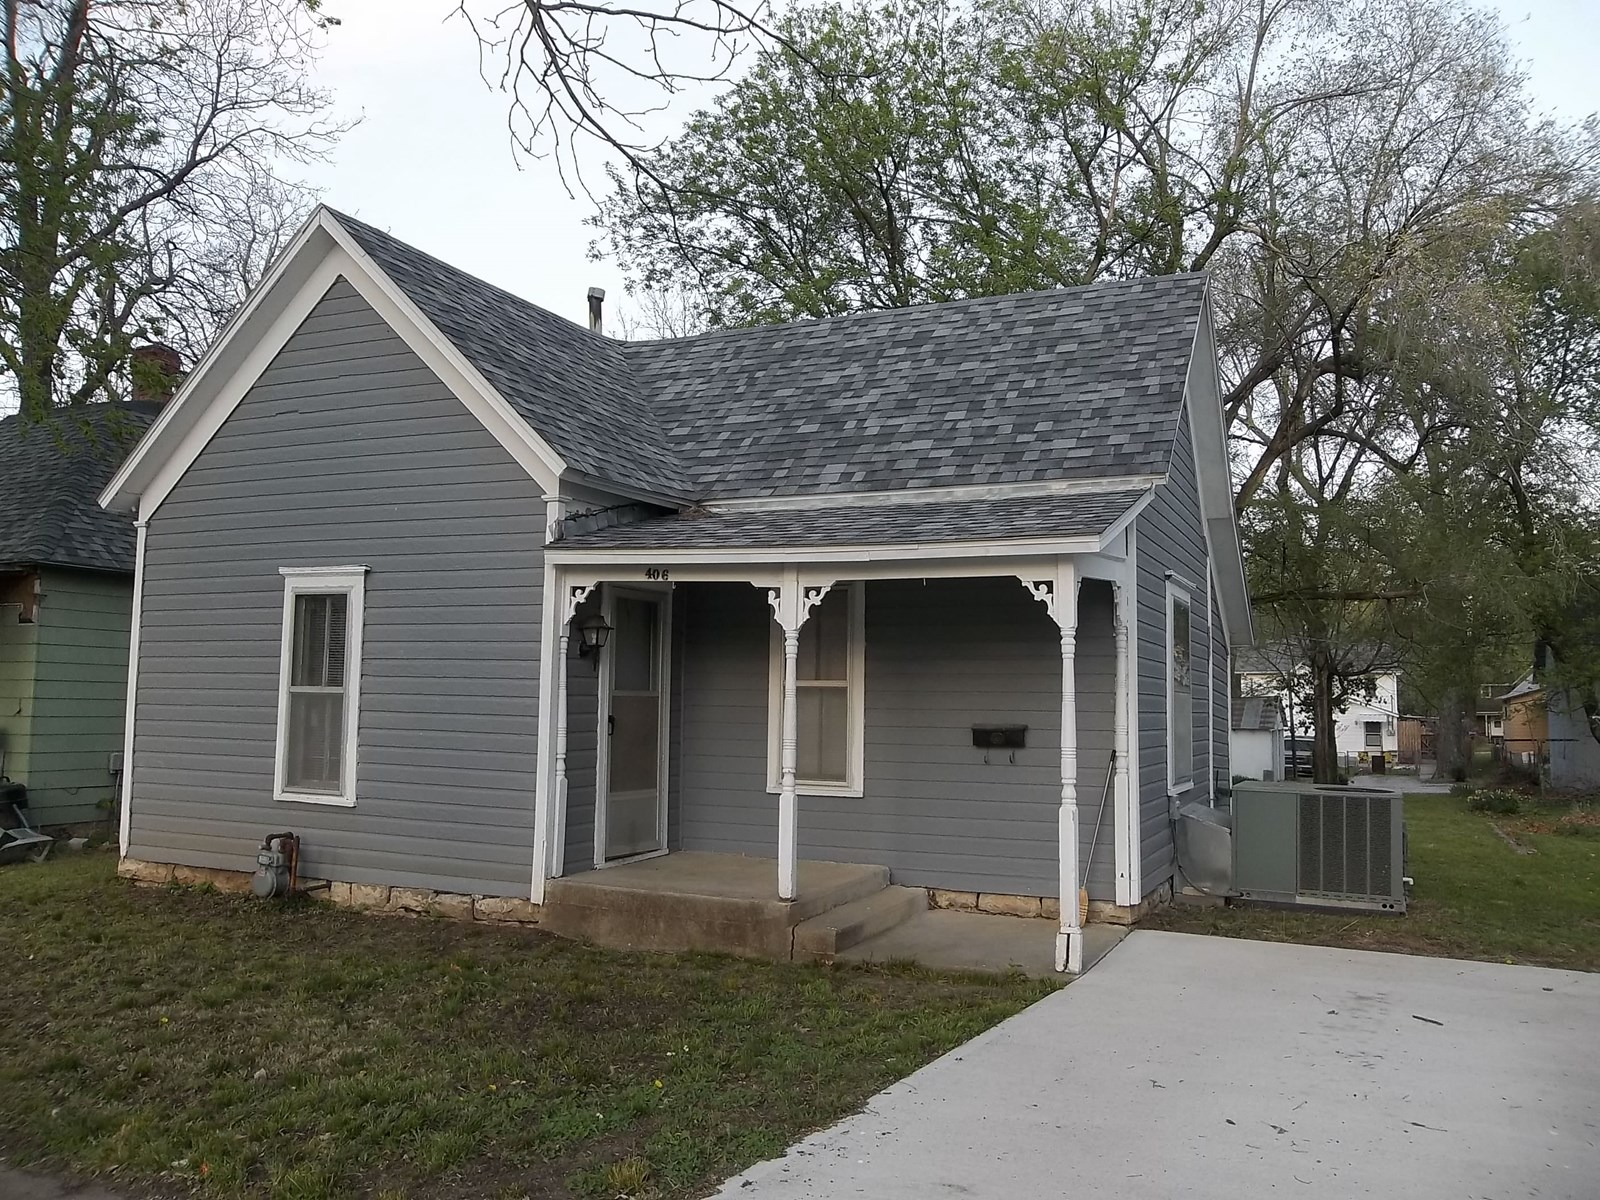 House for Sale in Chanute KS